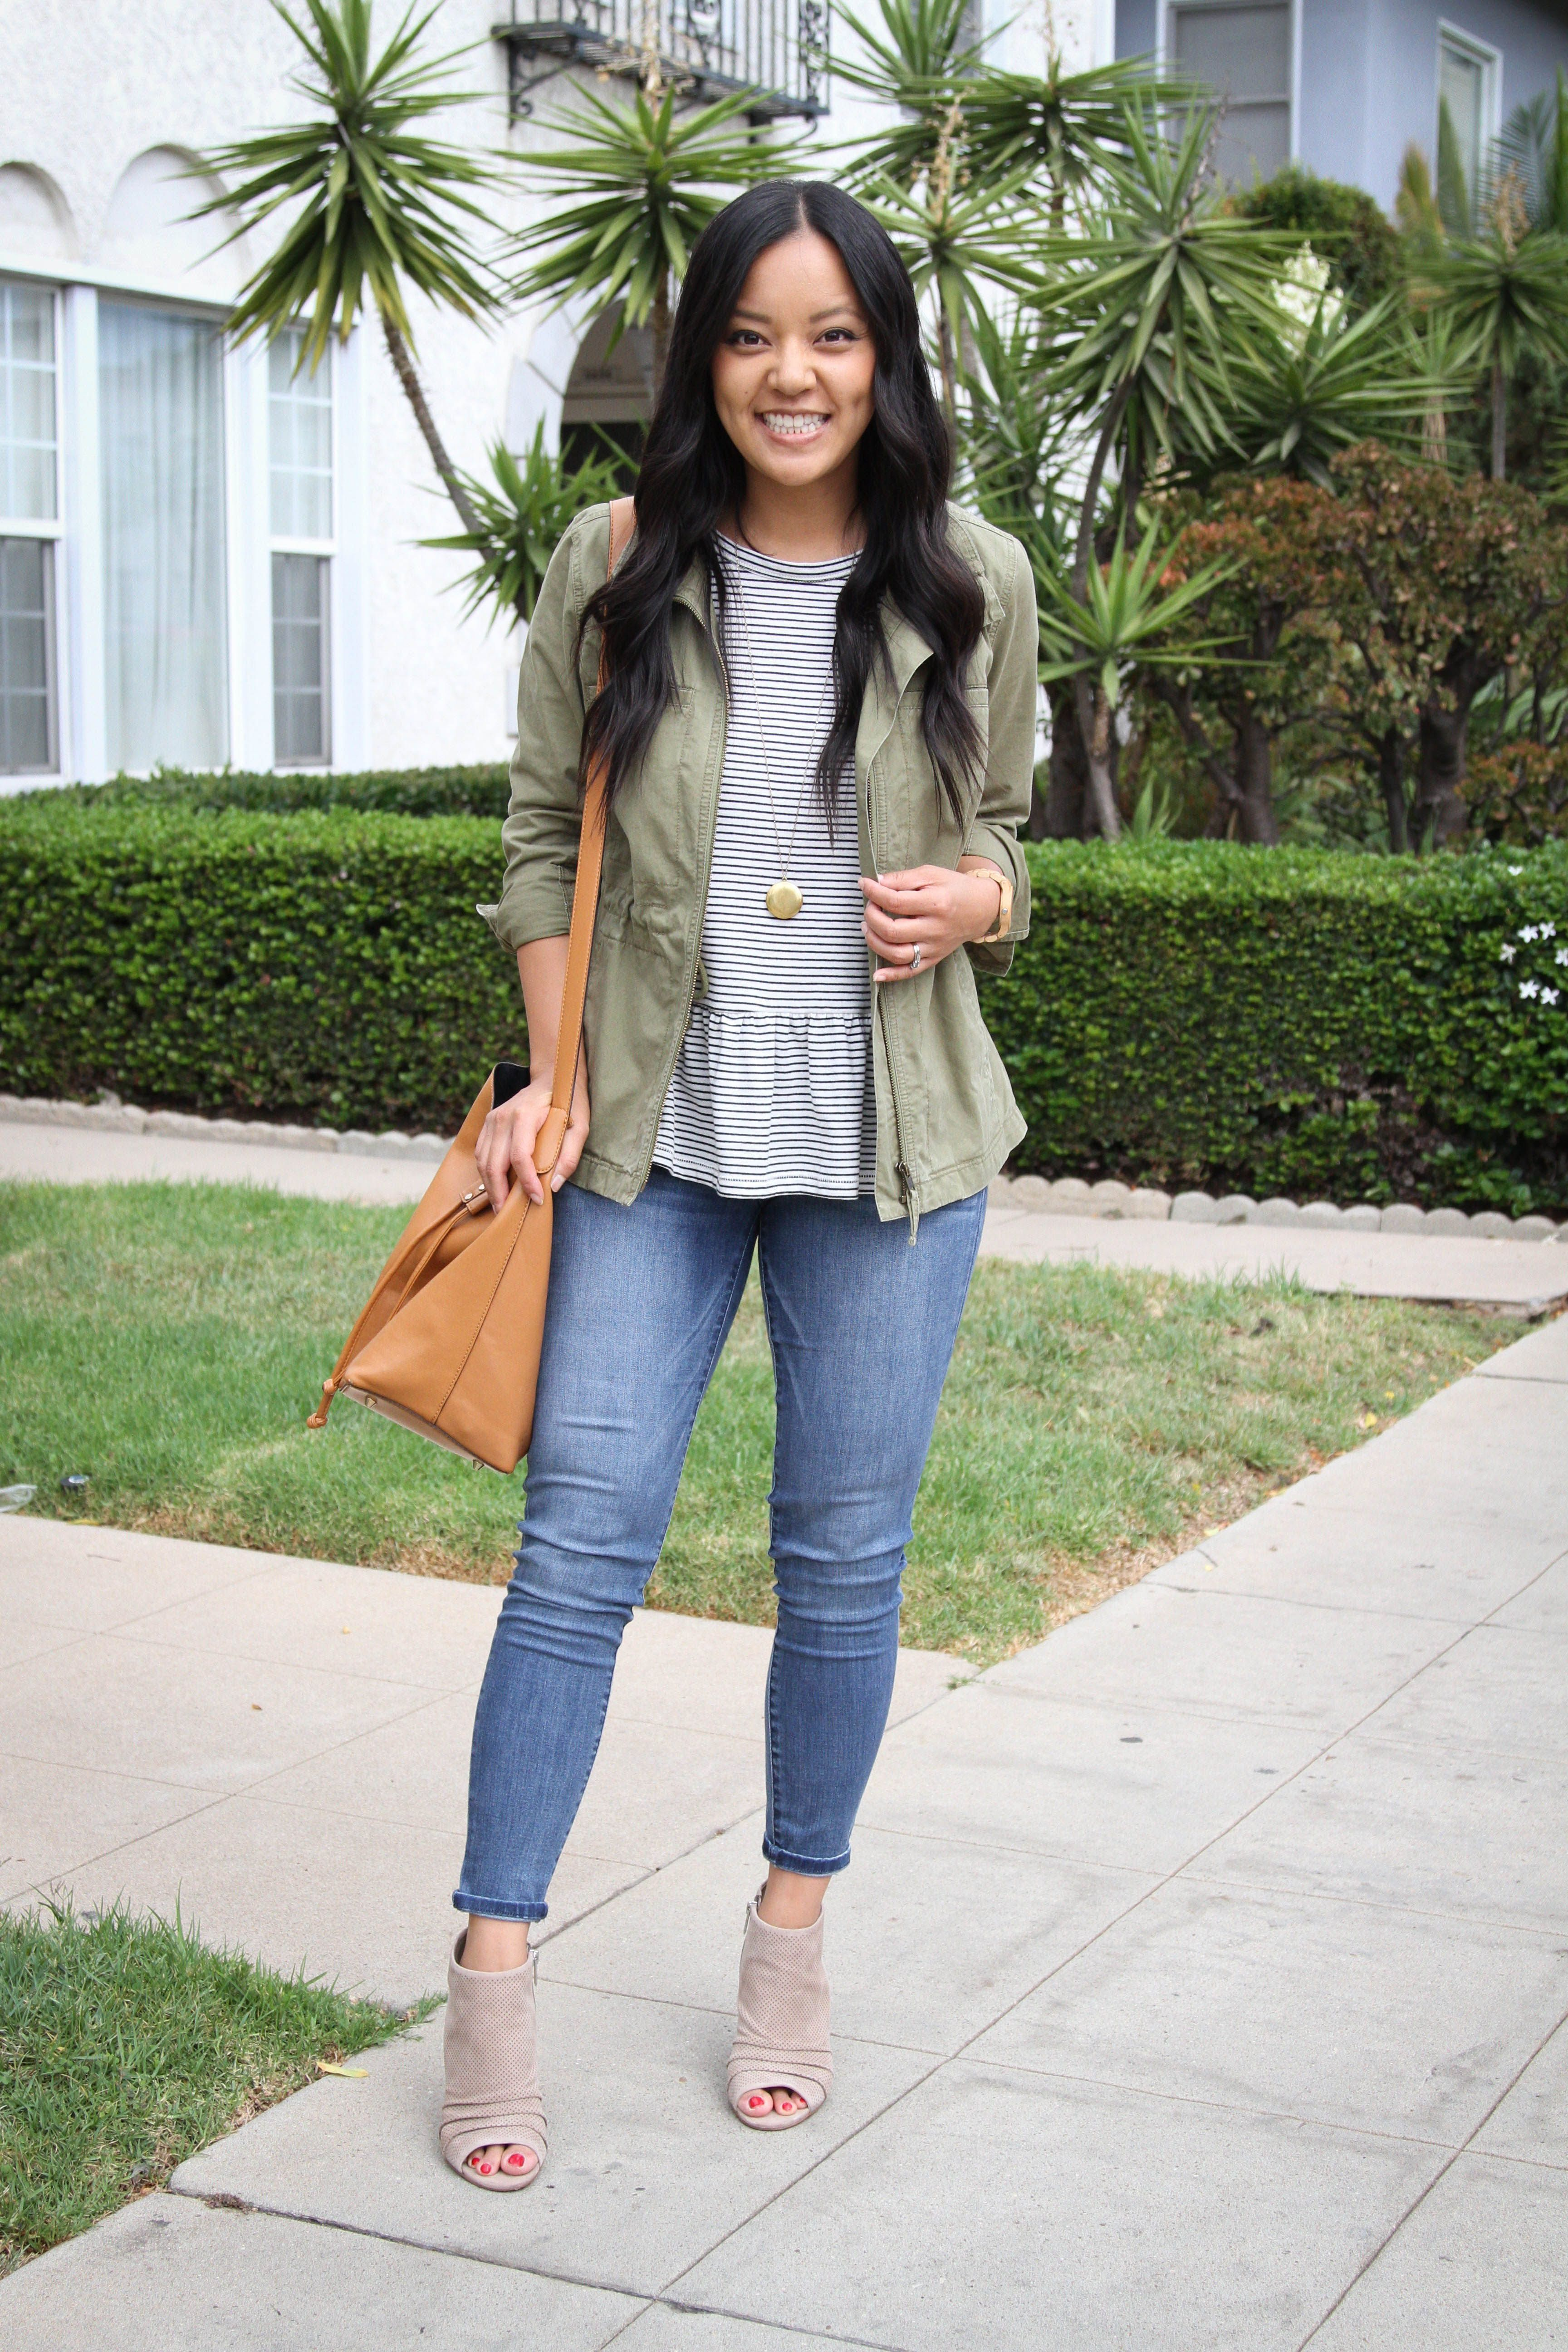 COMFY Tops for Cute, Comfortable, Casual Fall Outfits. YASSS